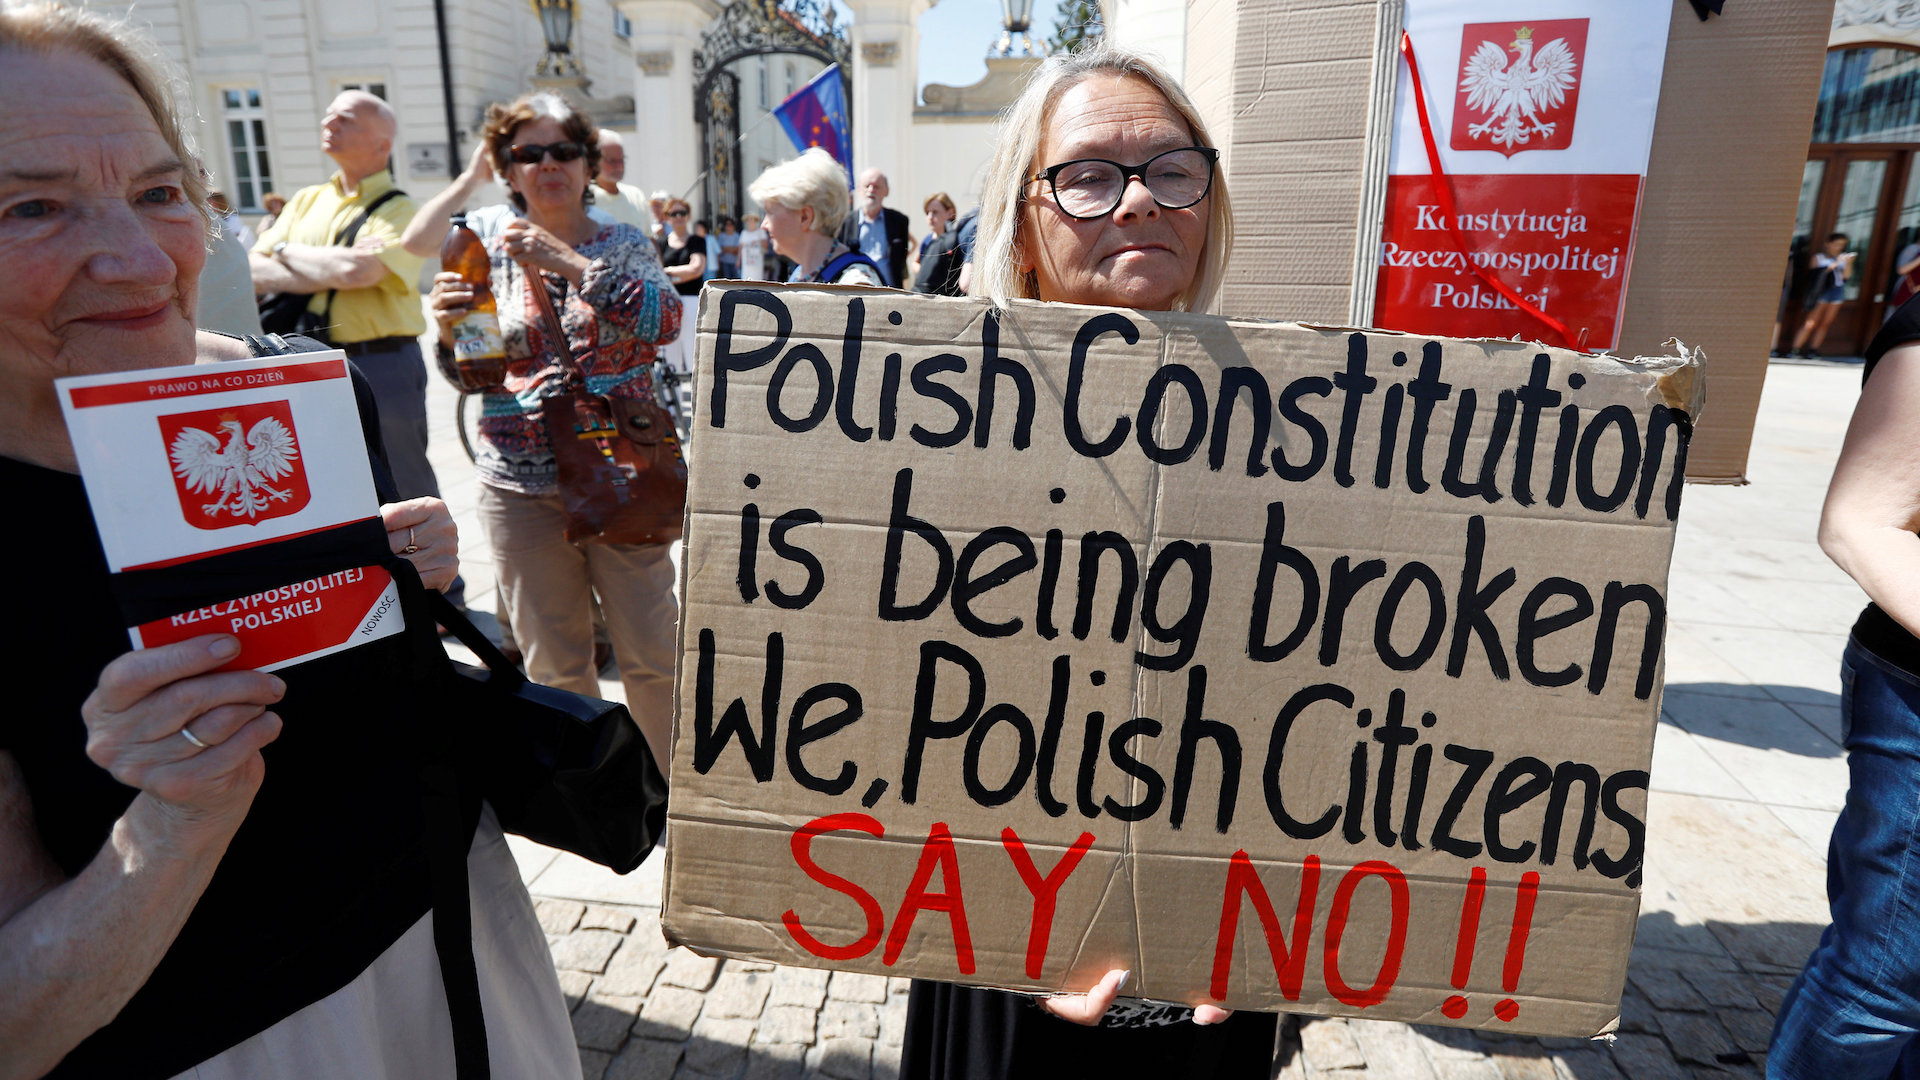 Poland's war on democracy was aided by Trump